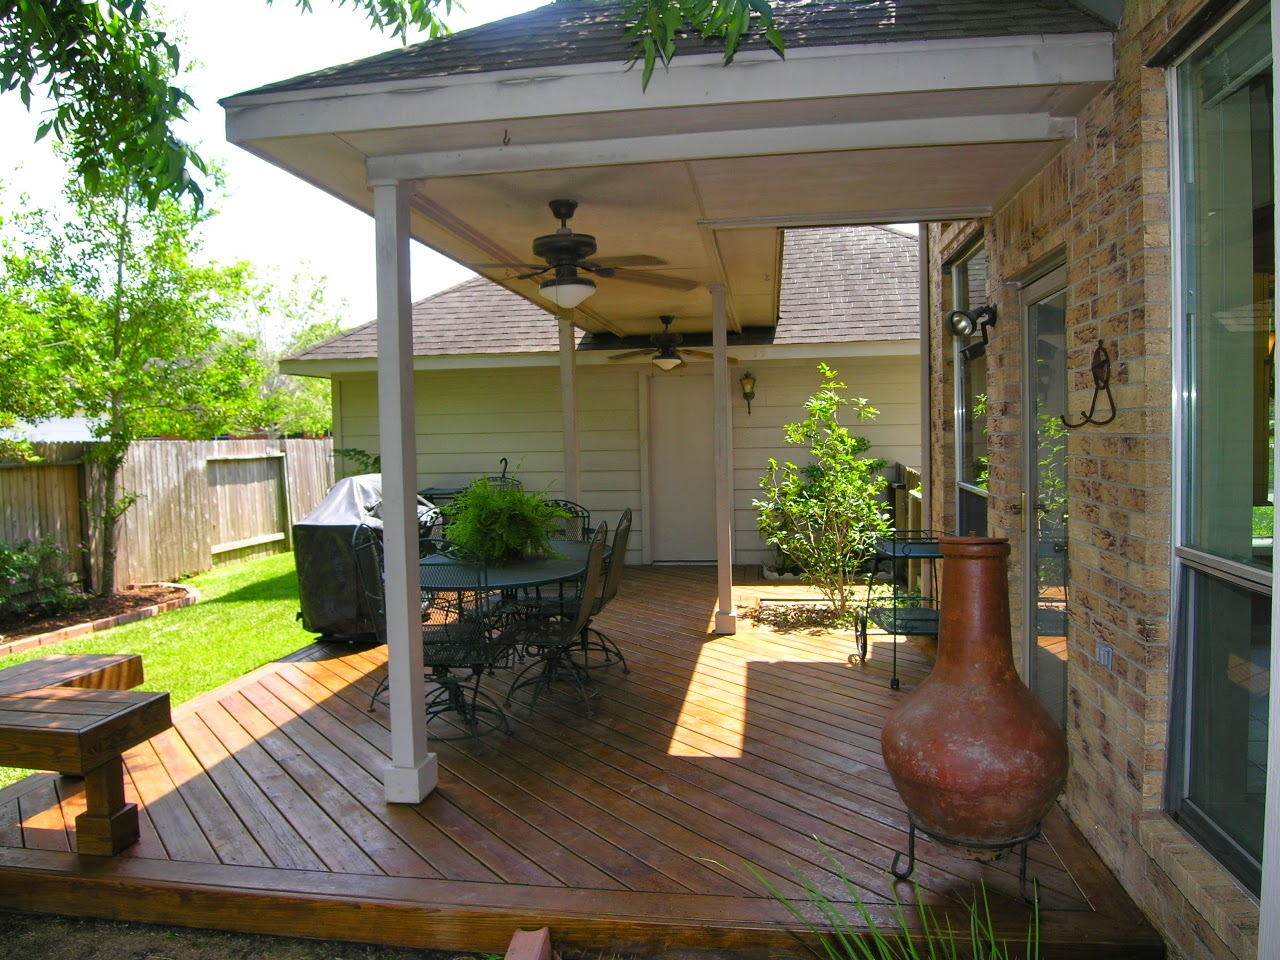 Small Back Porch Ideas Part Decorating Dma Homes 44431 within proportions  1280 X 960 - Back Porch Designs For Houses • Porches Ideas